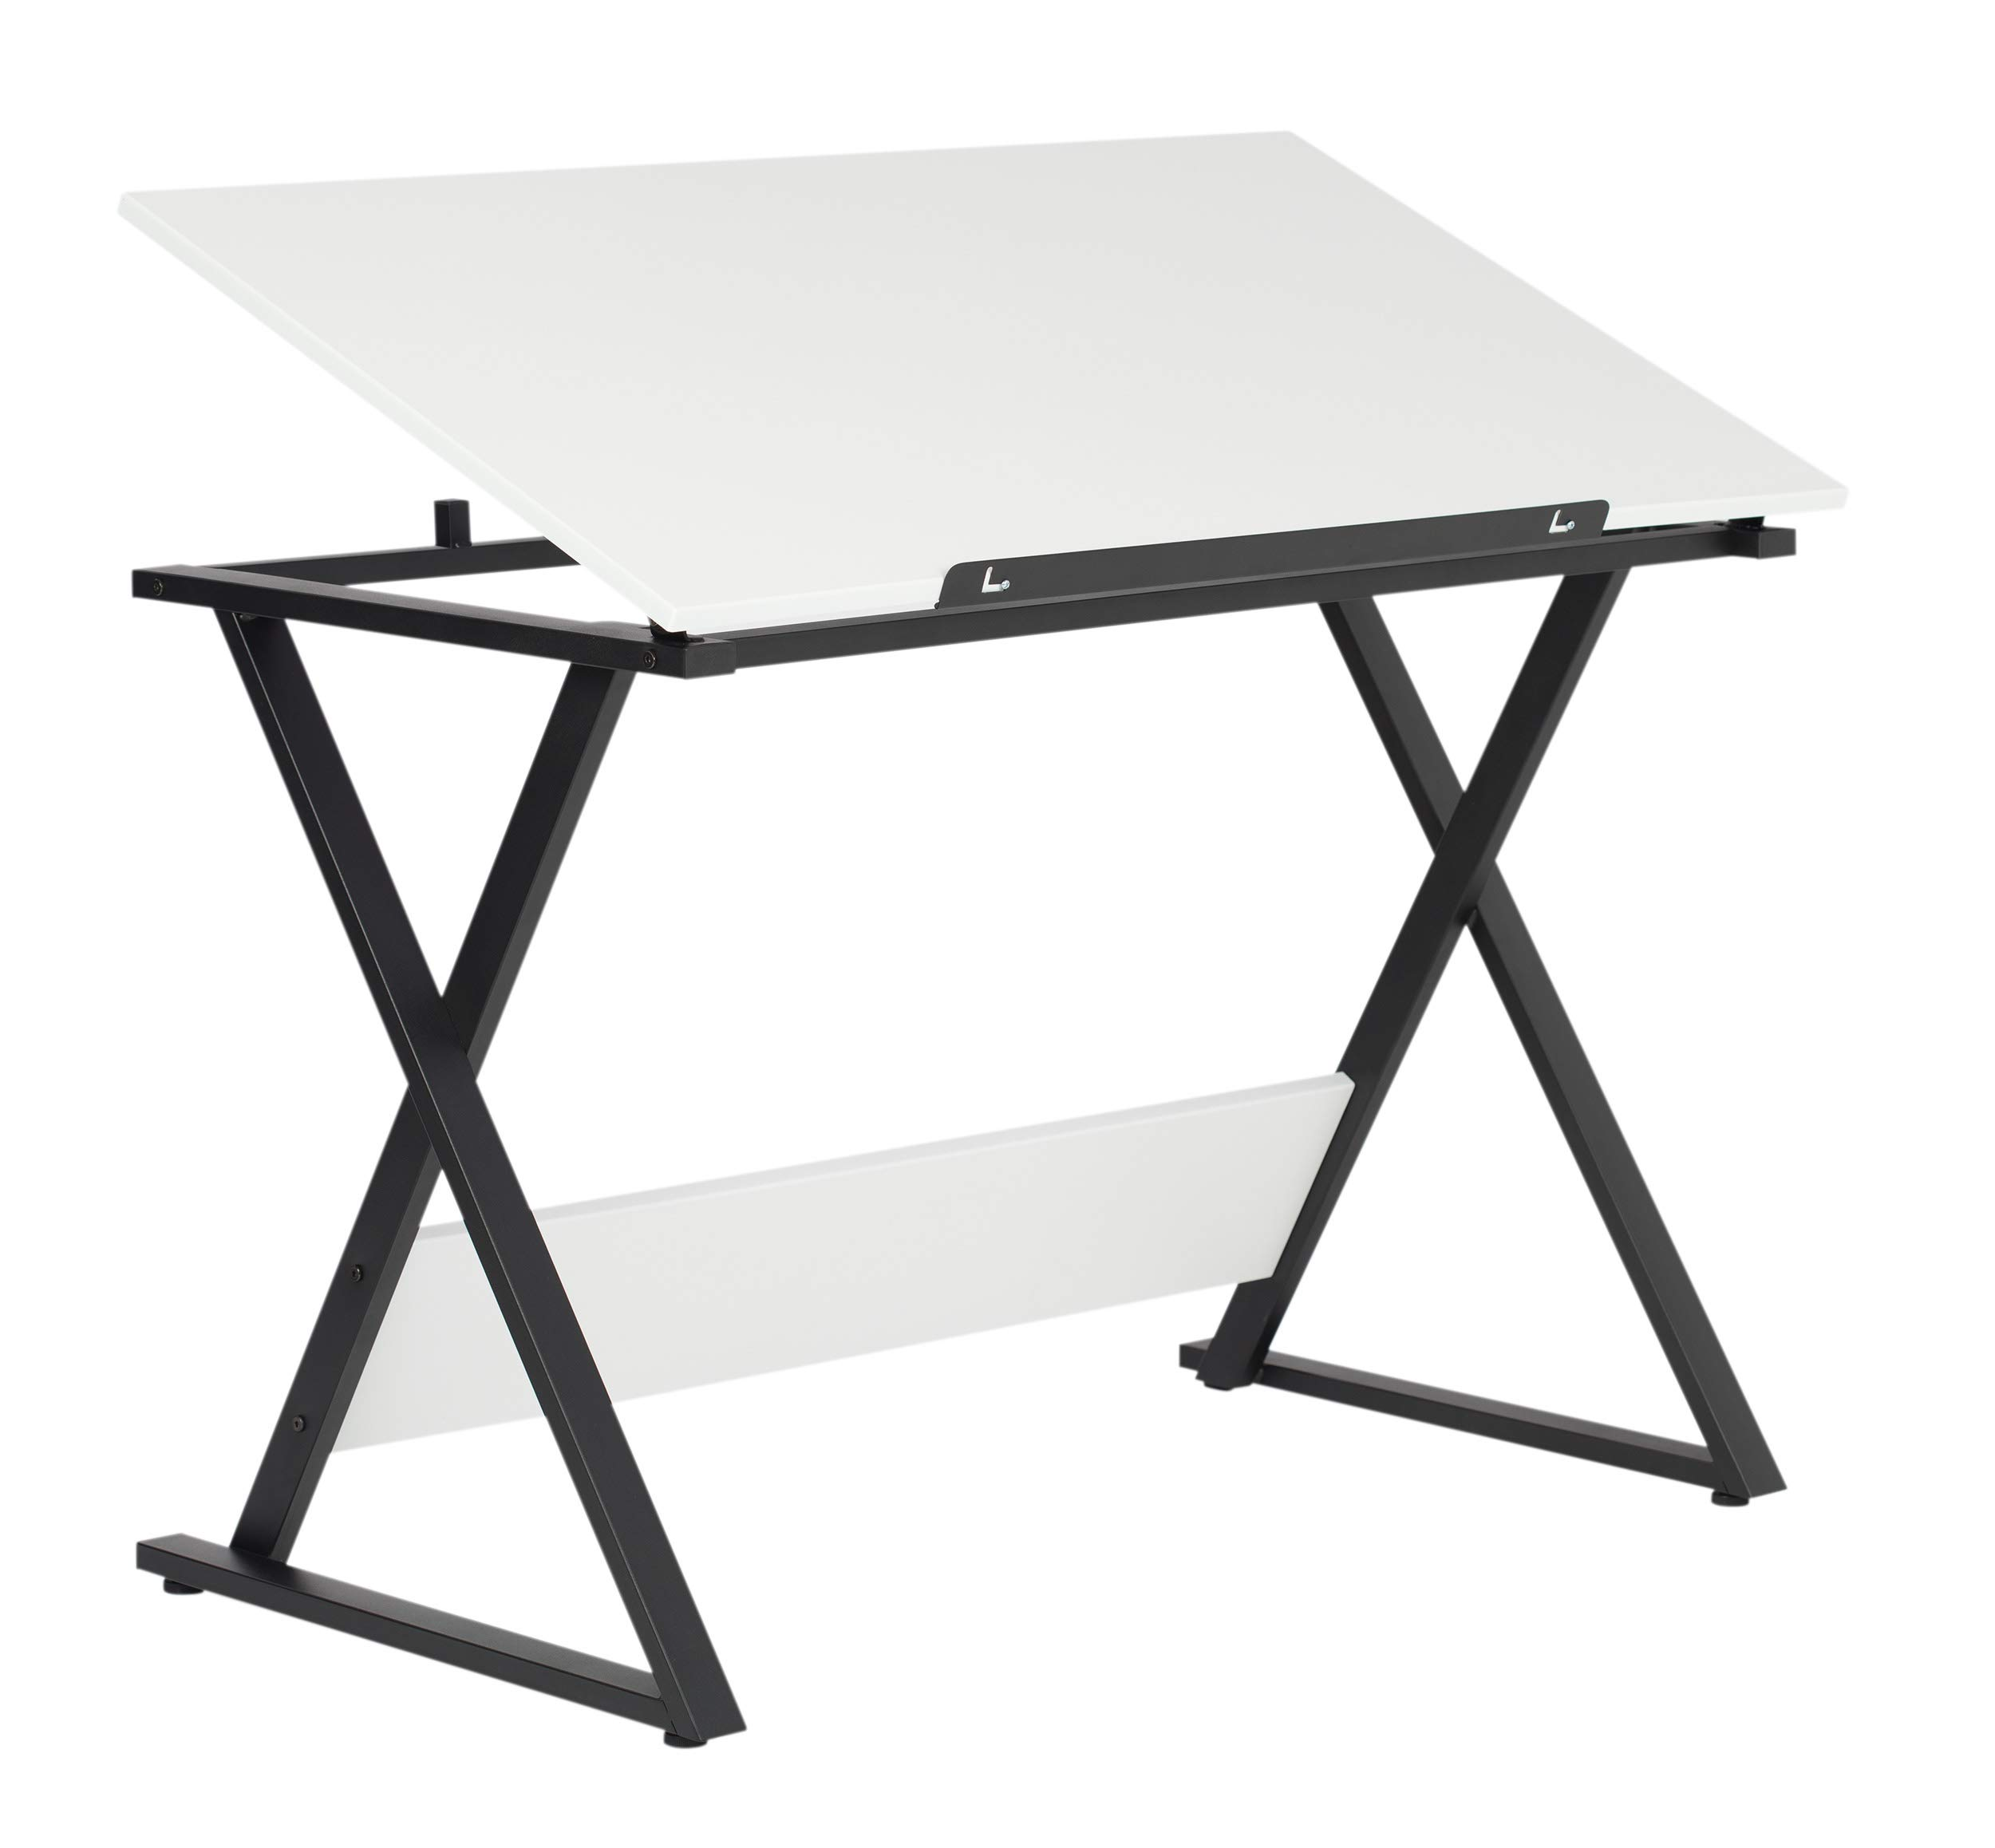 SD Studio Designs Studio Designs 13353 Axiom Modern Art, Drawing, Crafting, Drafting, 42-Inch Wide MDF Adjustable Angle Top Table in Charcoal/White, W x 24'' D x 30'' H by SD STUDIO DESIGNS